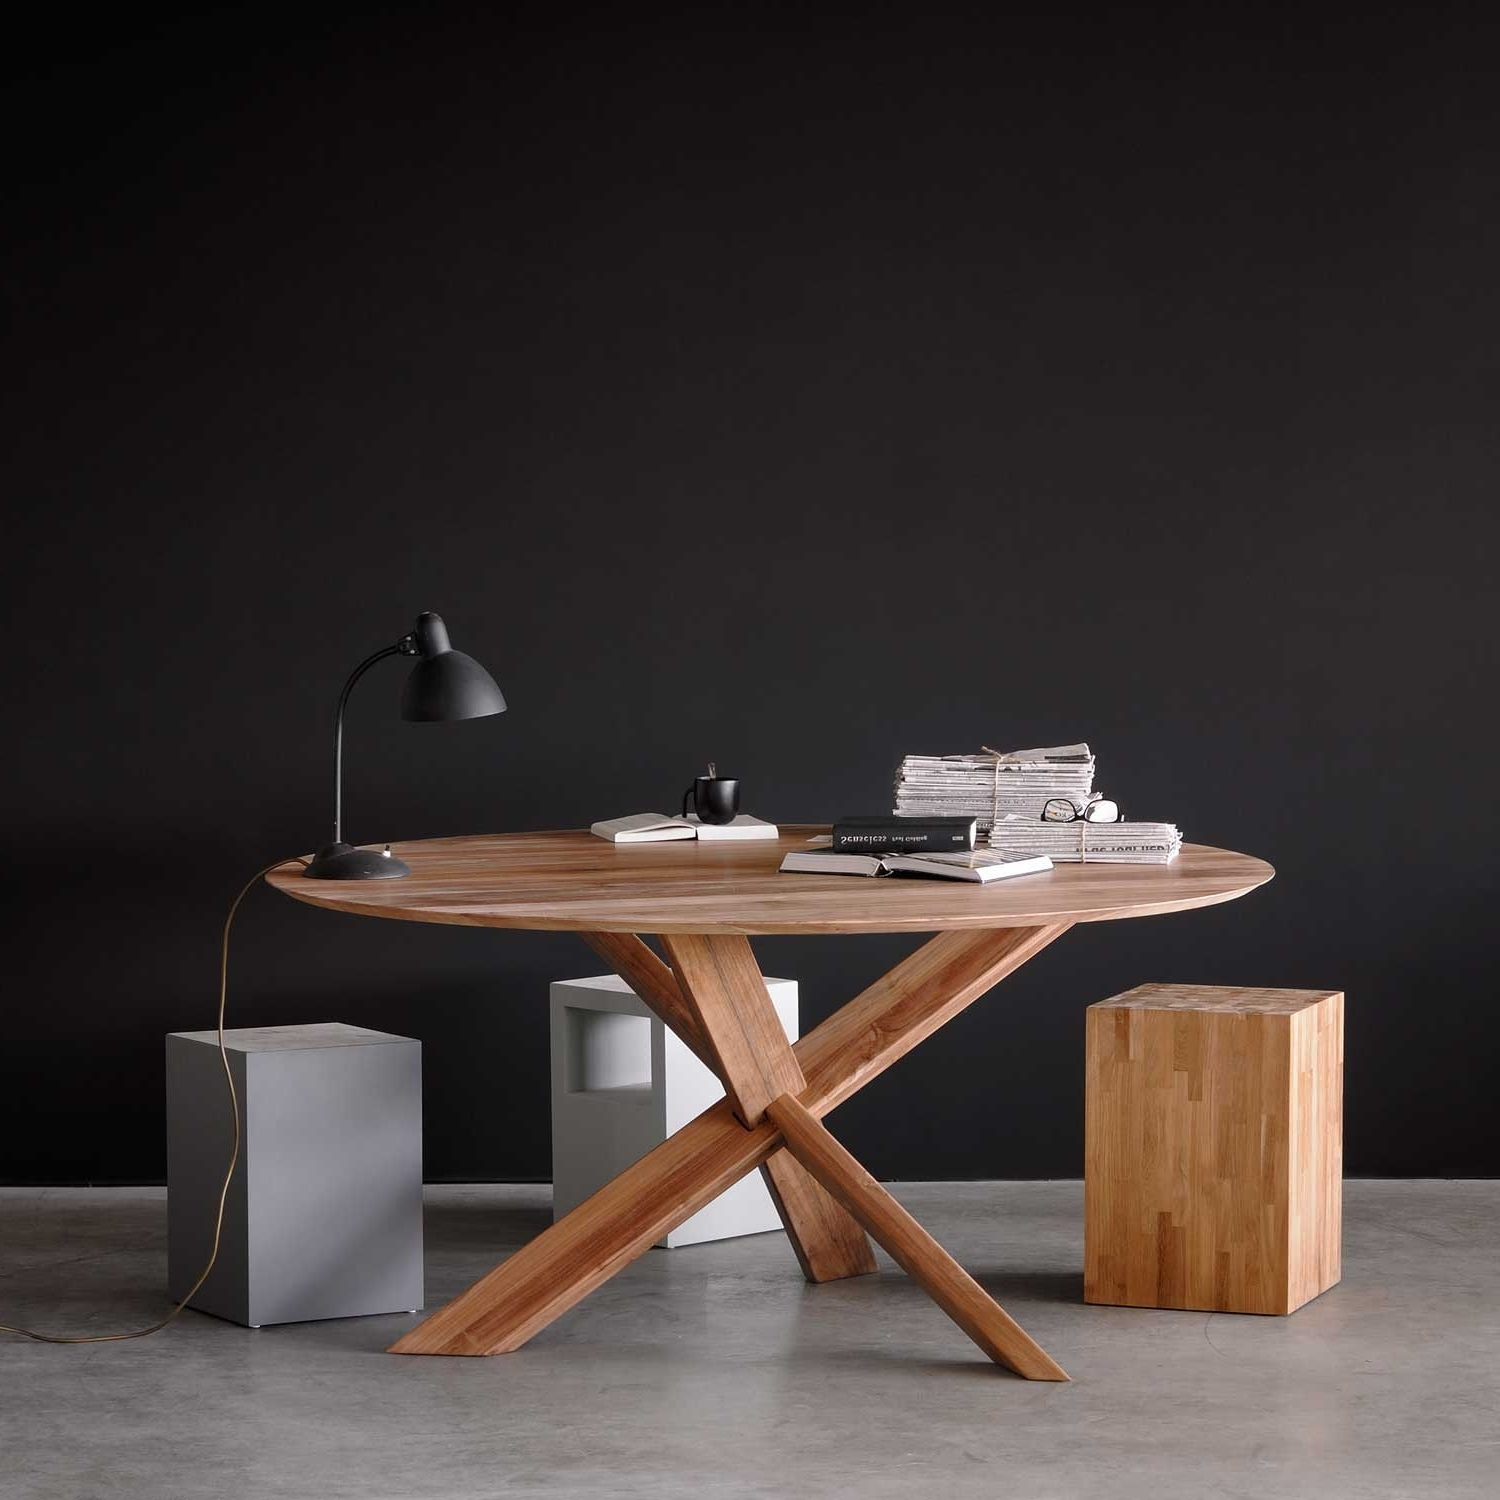 Circle Dining Tables For Well Known Teak Circle Dining Tableethnicraft (View 3 of 25)